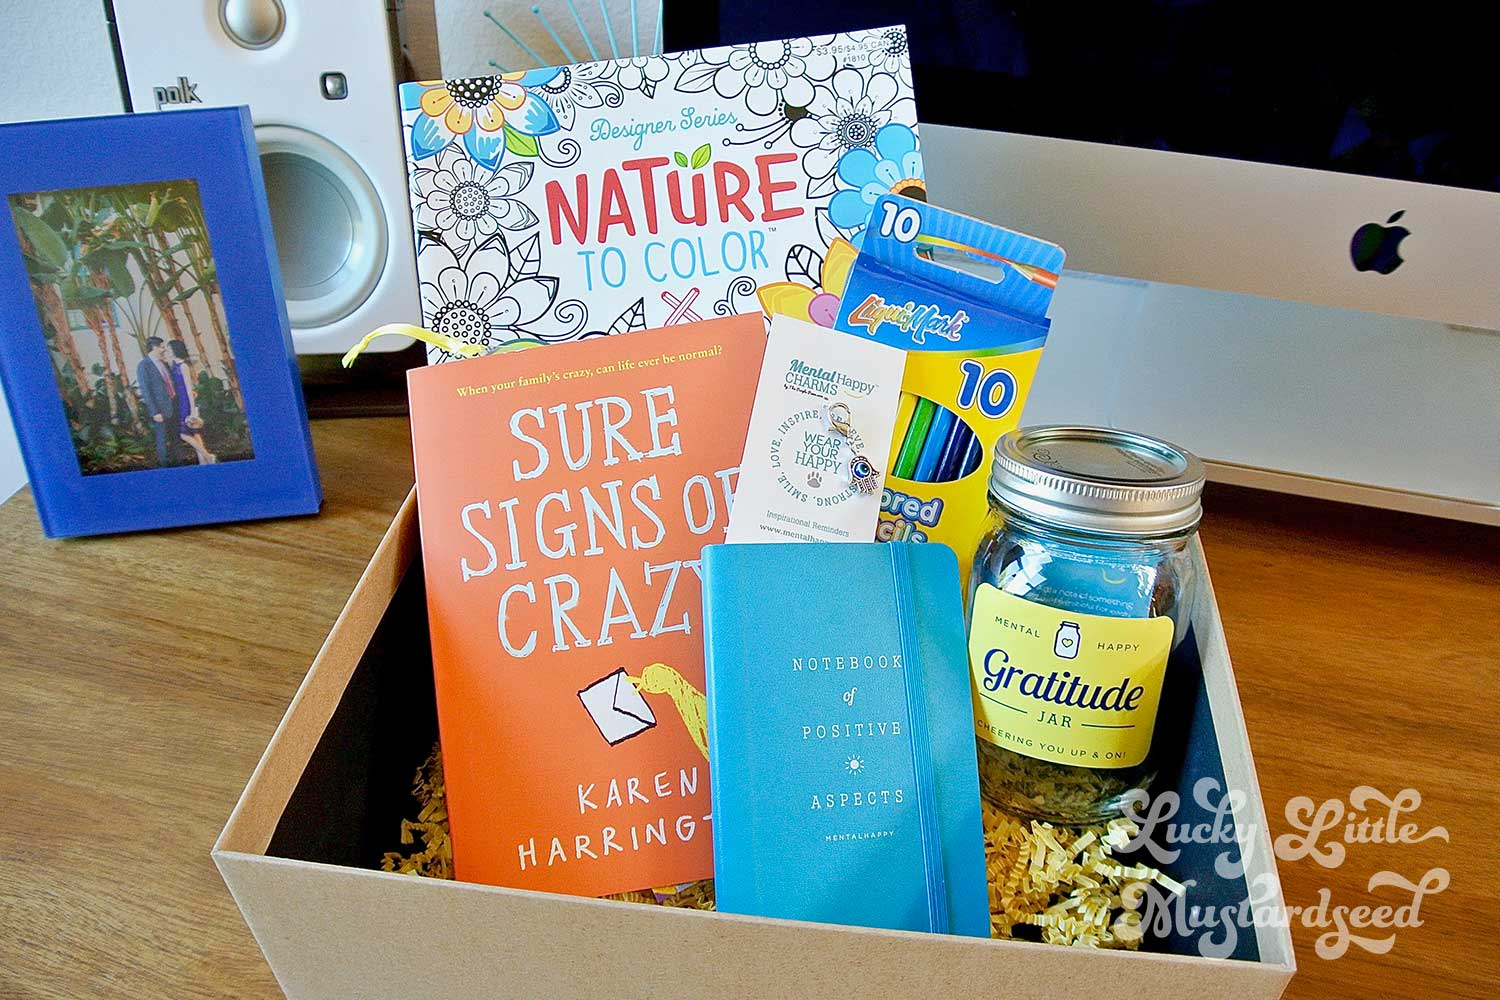 jenna-pilant-san-diego-lifestyle-blogger-lucky-little-mustardseed-mentalhappy-cheerbox-4